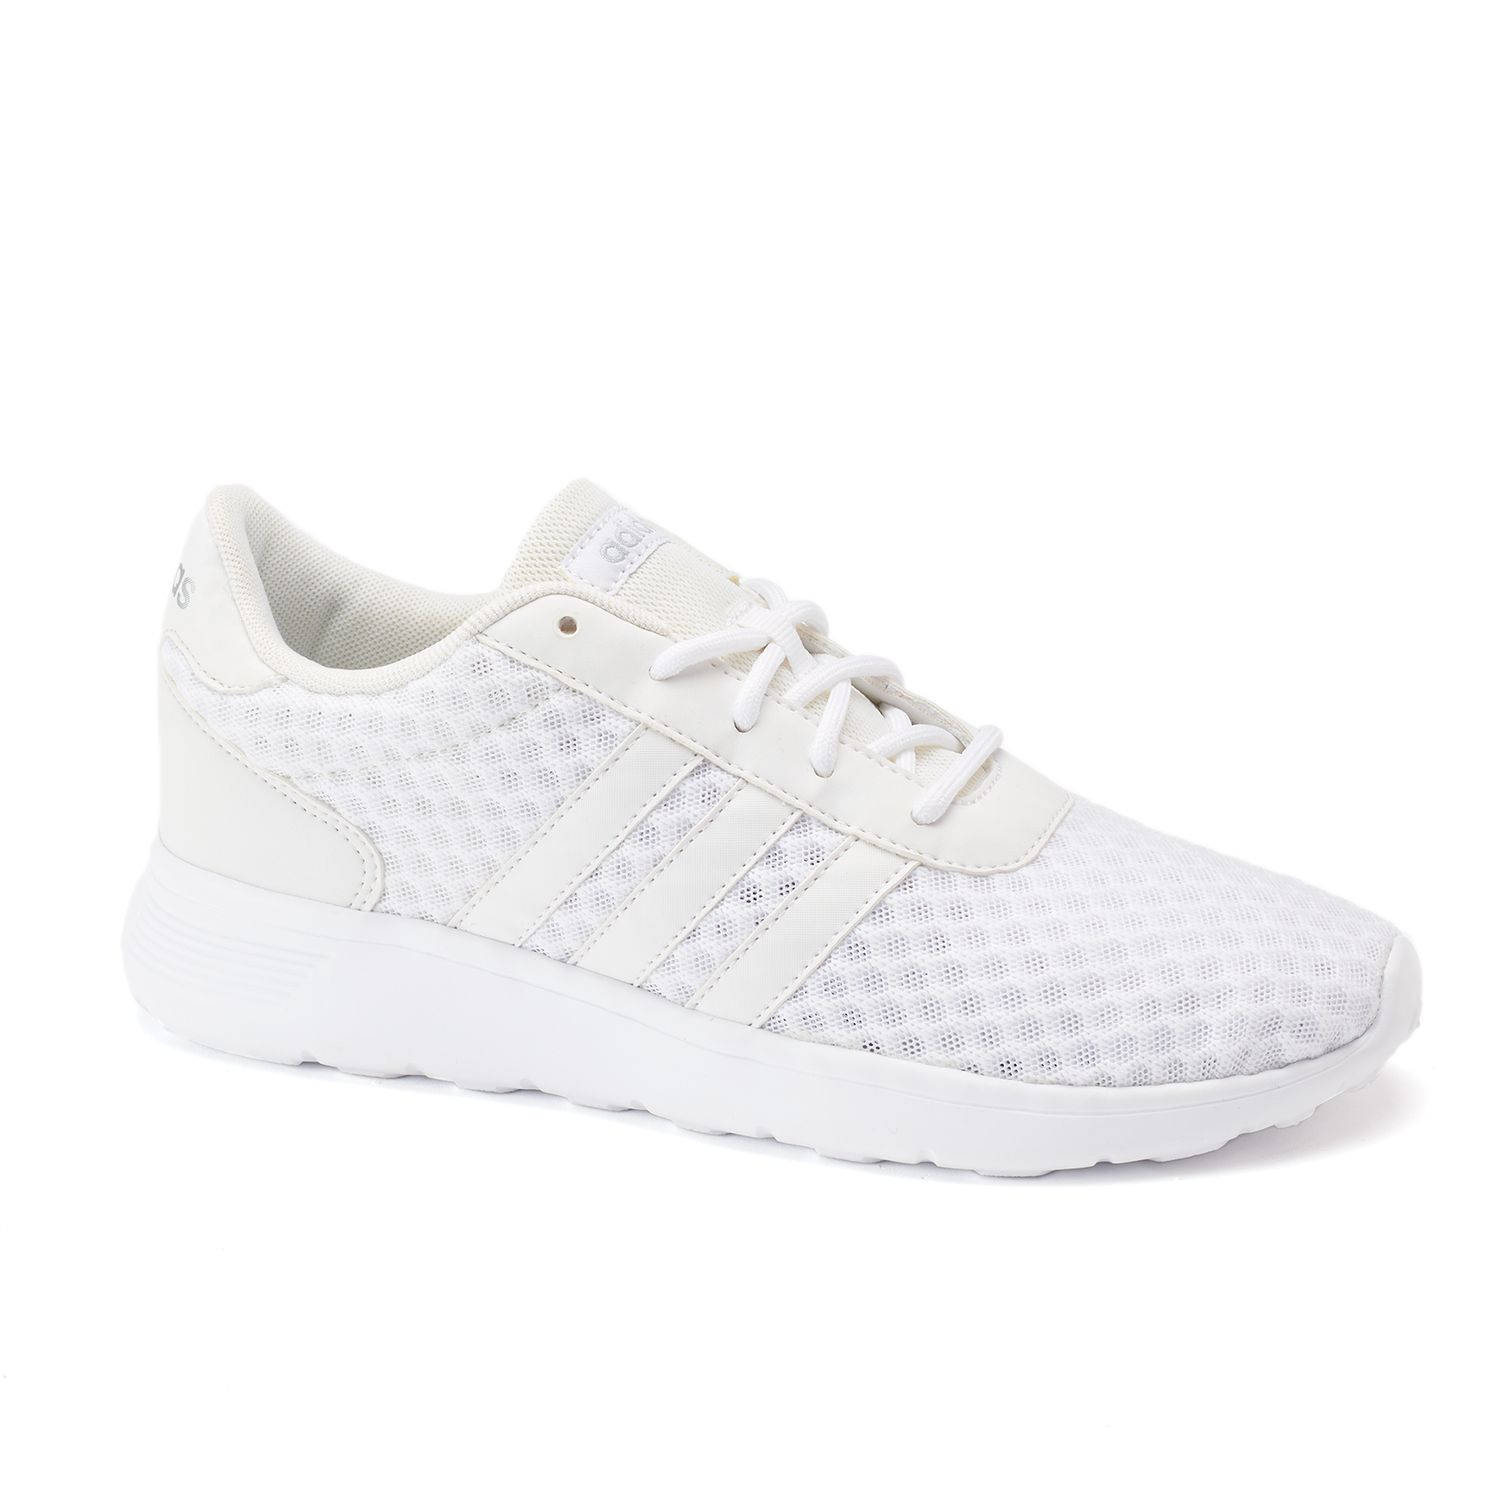 Adidas Ultra Boost White 1.0 Vs 2.0 ie consulting.ca